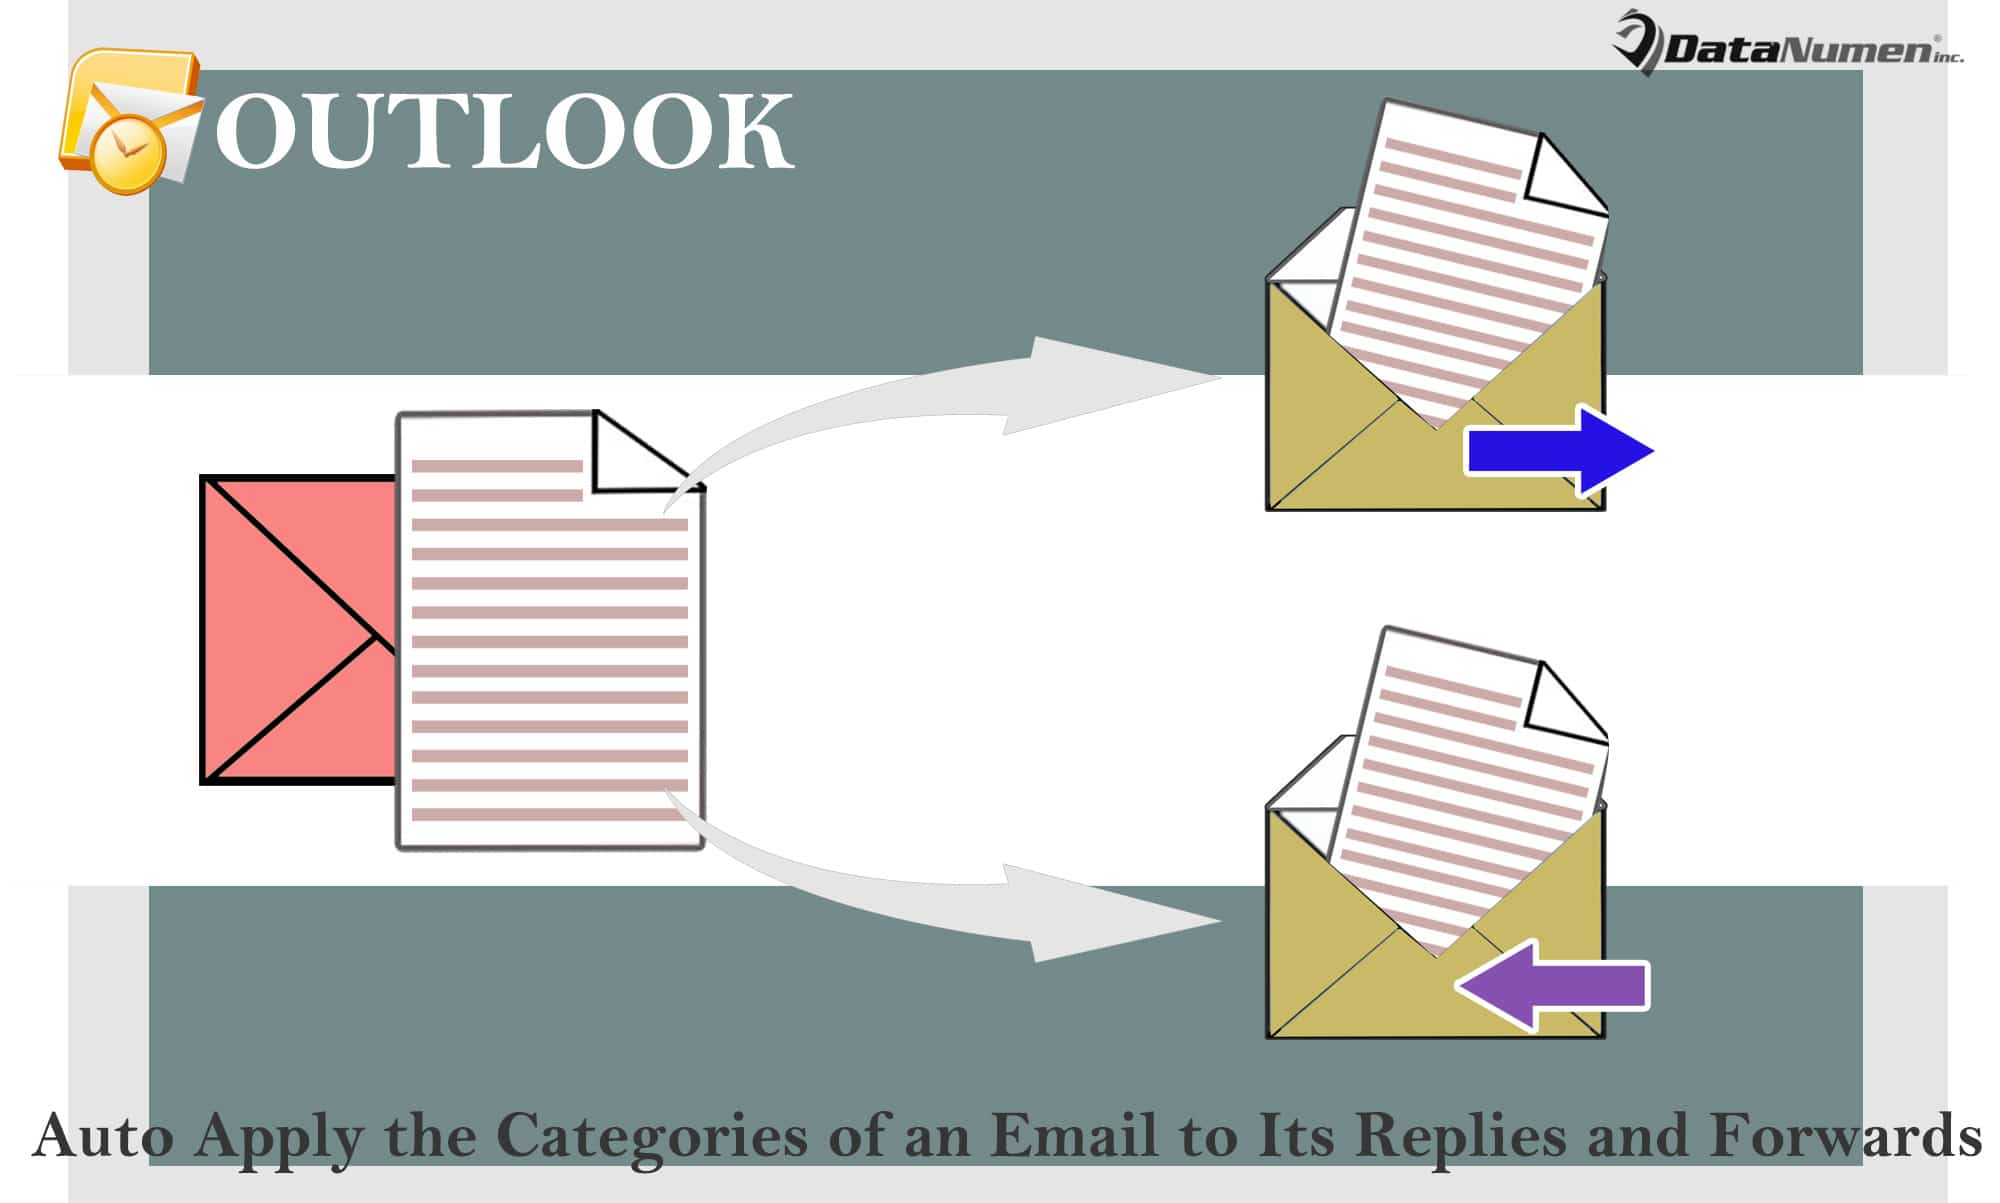 Auto Apply the Categories of an Email to All Its Replies and Forwards in Outlook